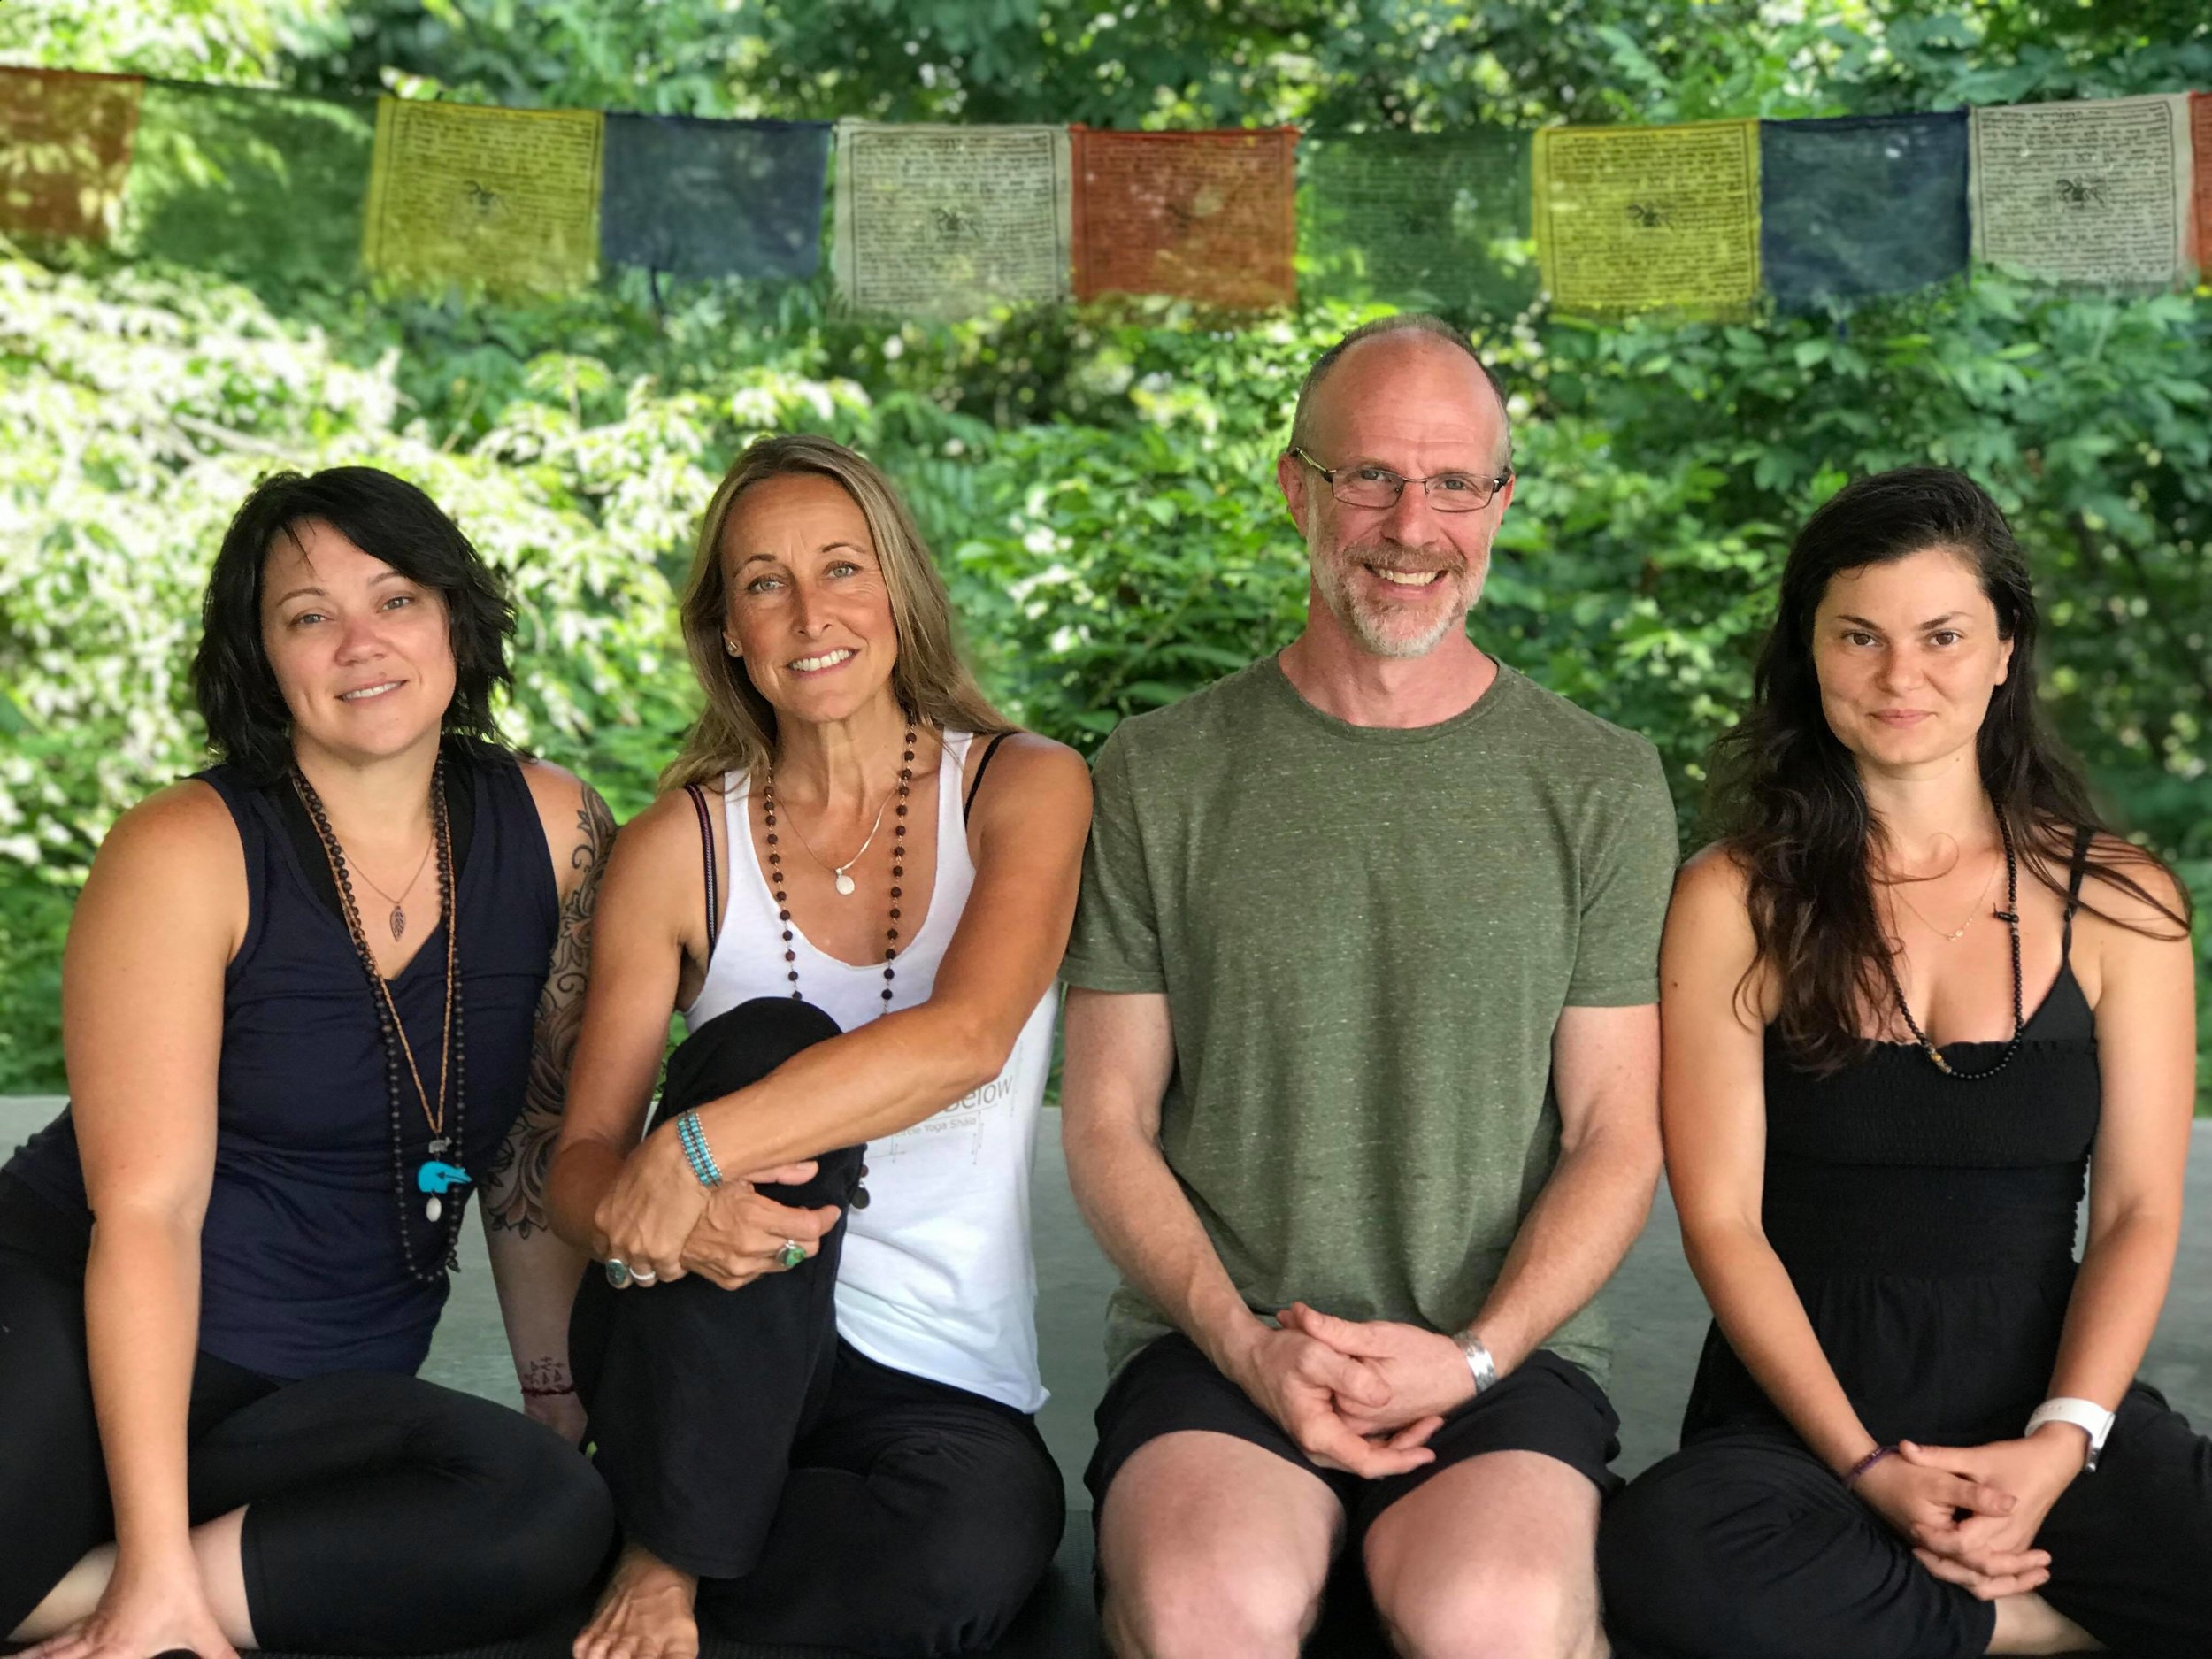 Featured from left to right: Kate Bee, RYT 500; Holly Krepps, C-IAYT and Co-founder of CYS; Matt Krepps, C-IAYT and Co-founder of CYS; Stela Balaban, RYT 500 and Program Director Asst.